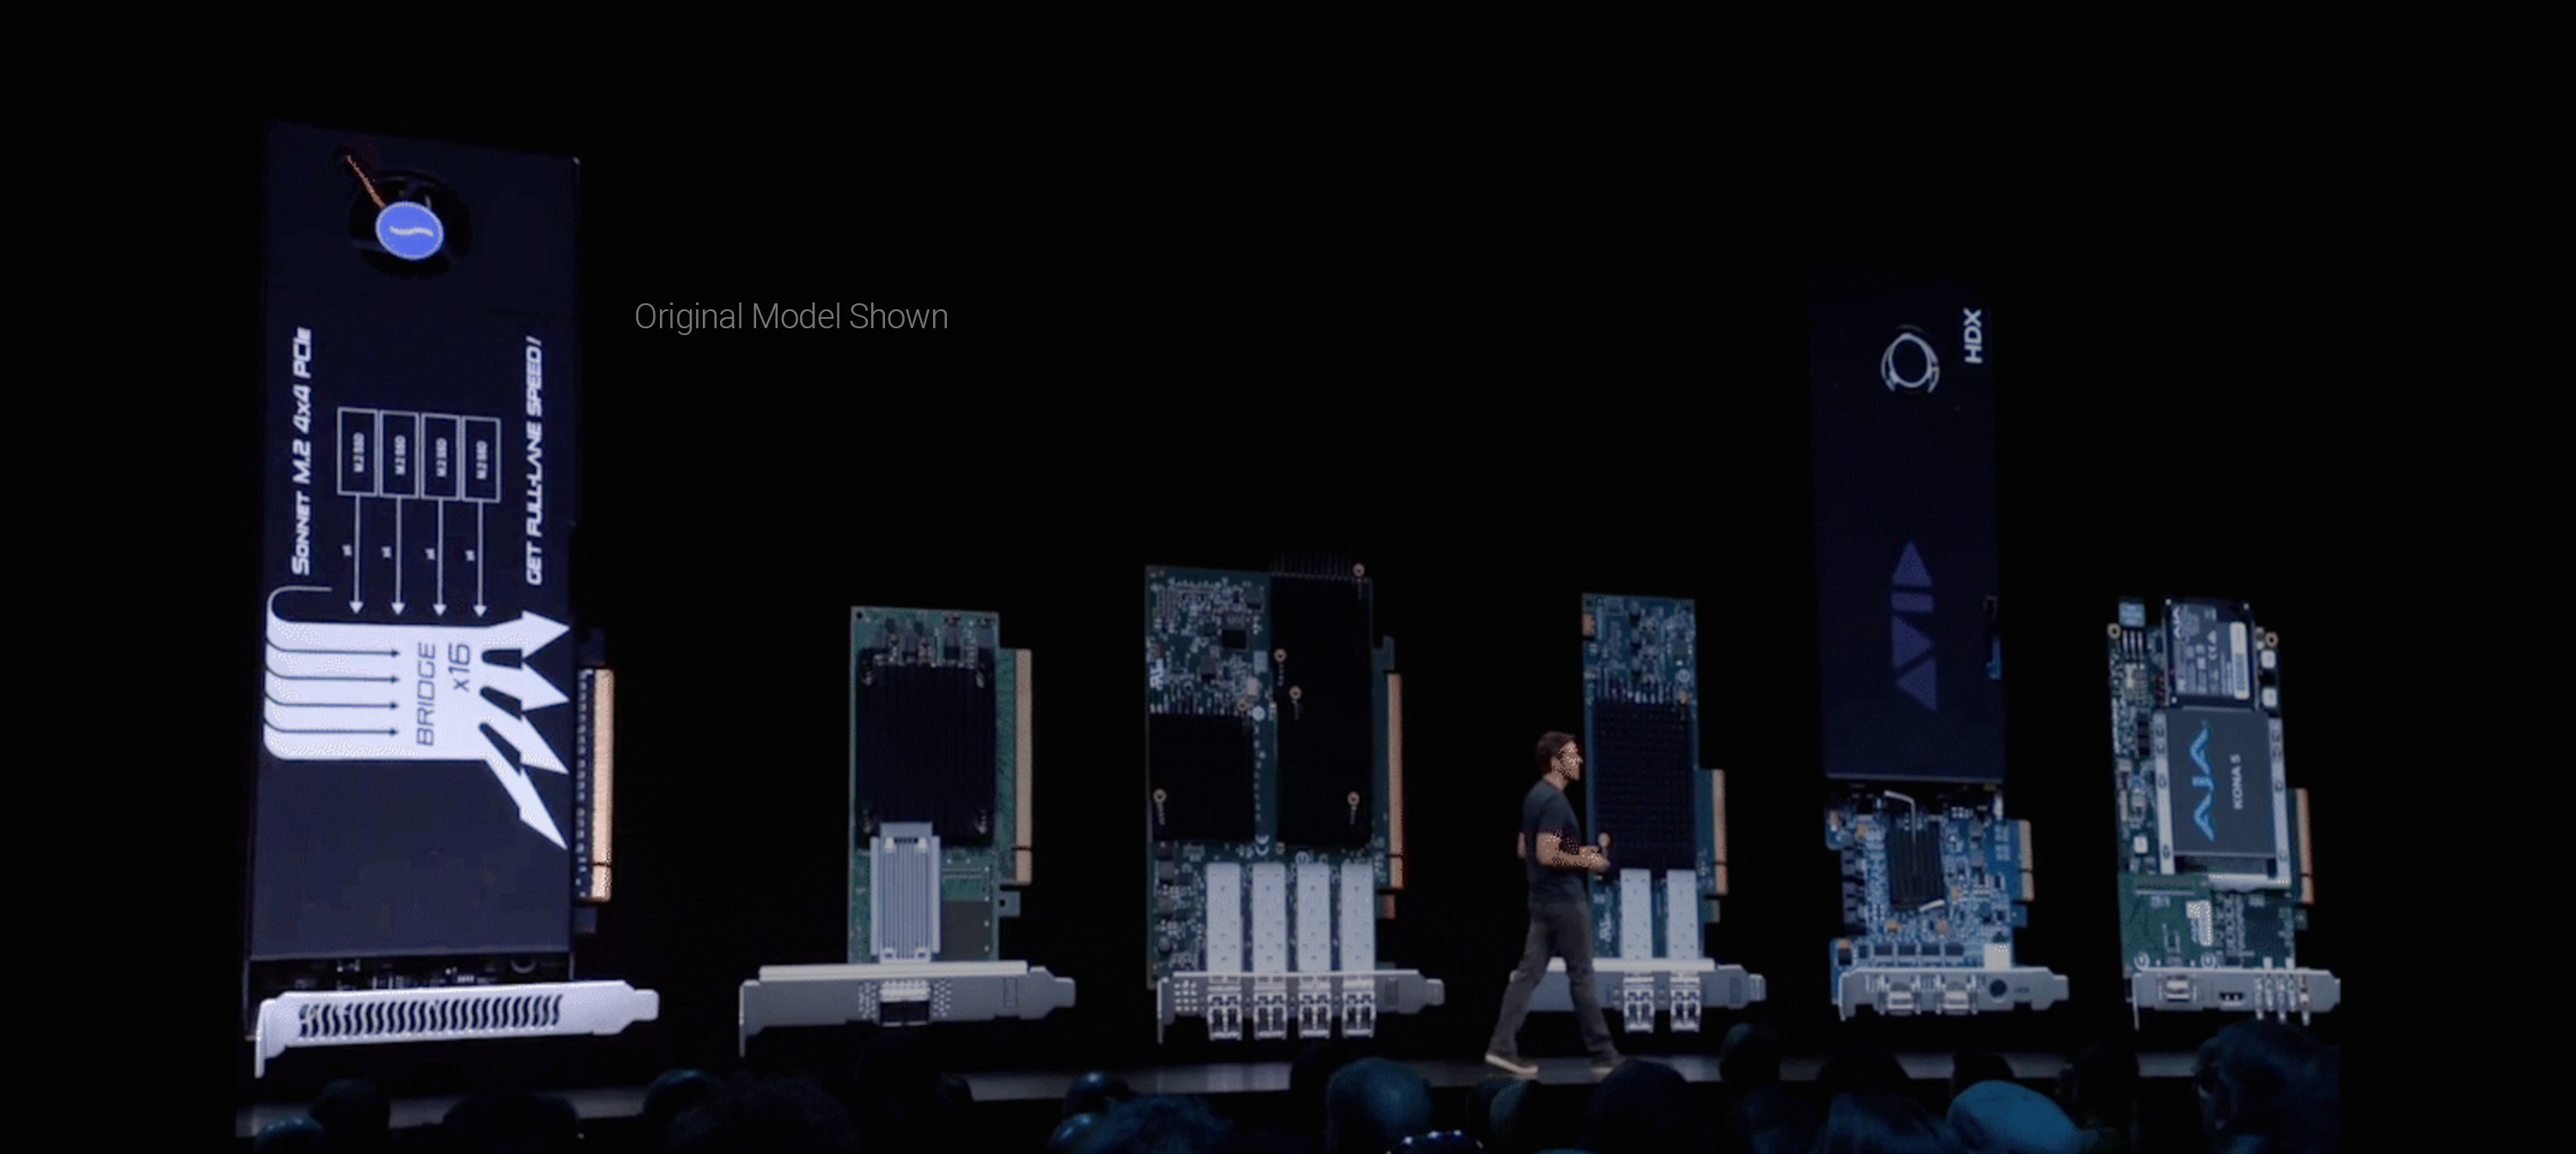 Screenshot of Sonnet M.2 4x4 PCIe Card Featured at Apple's WWDC Conference